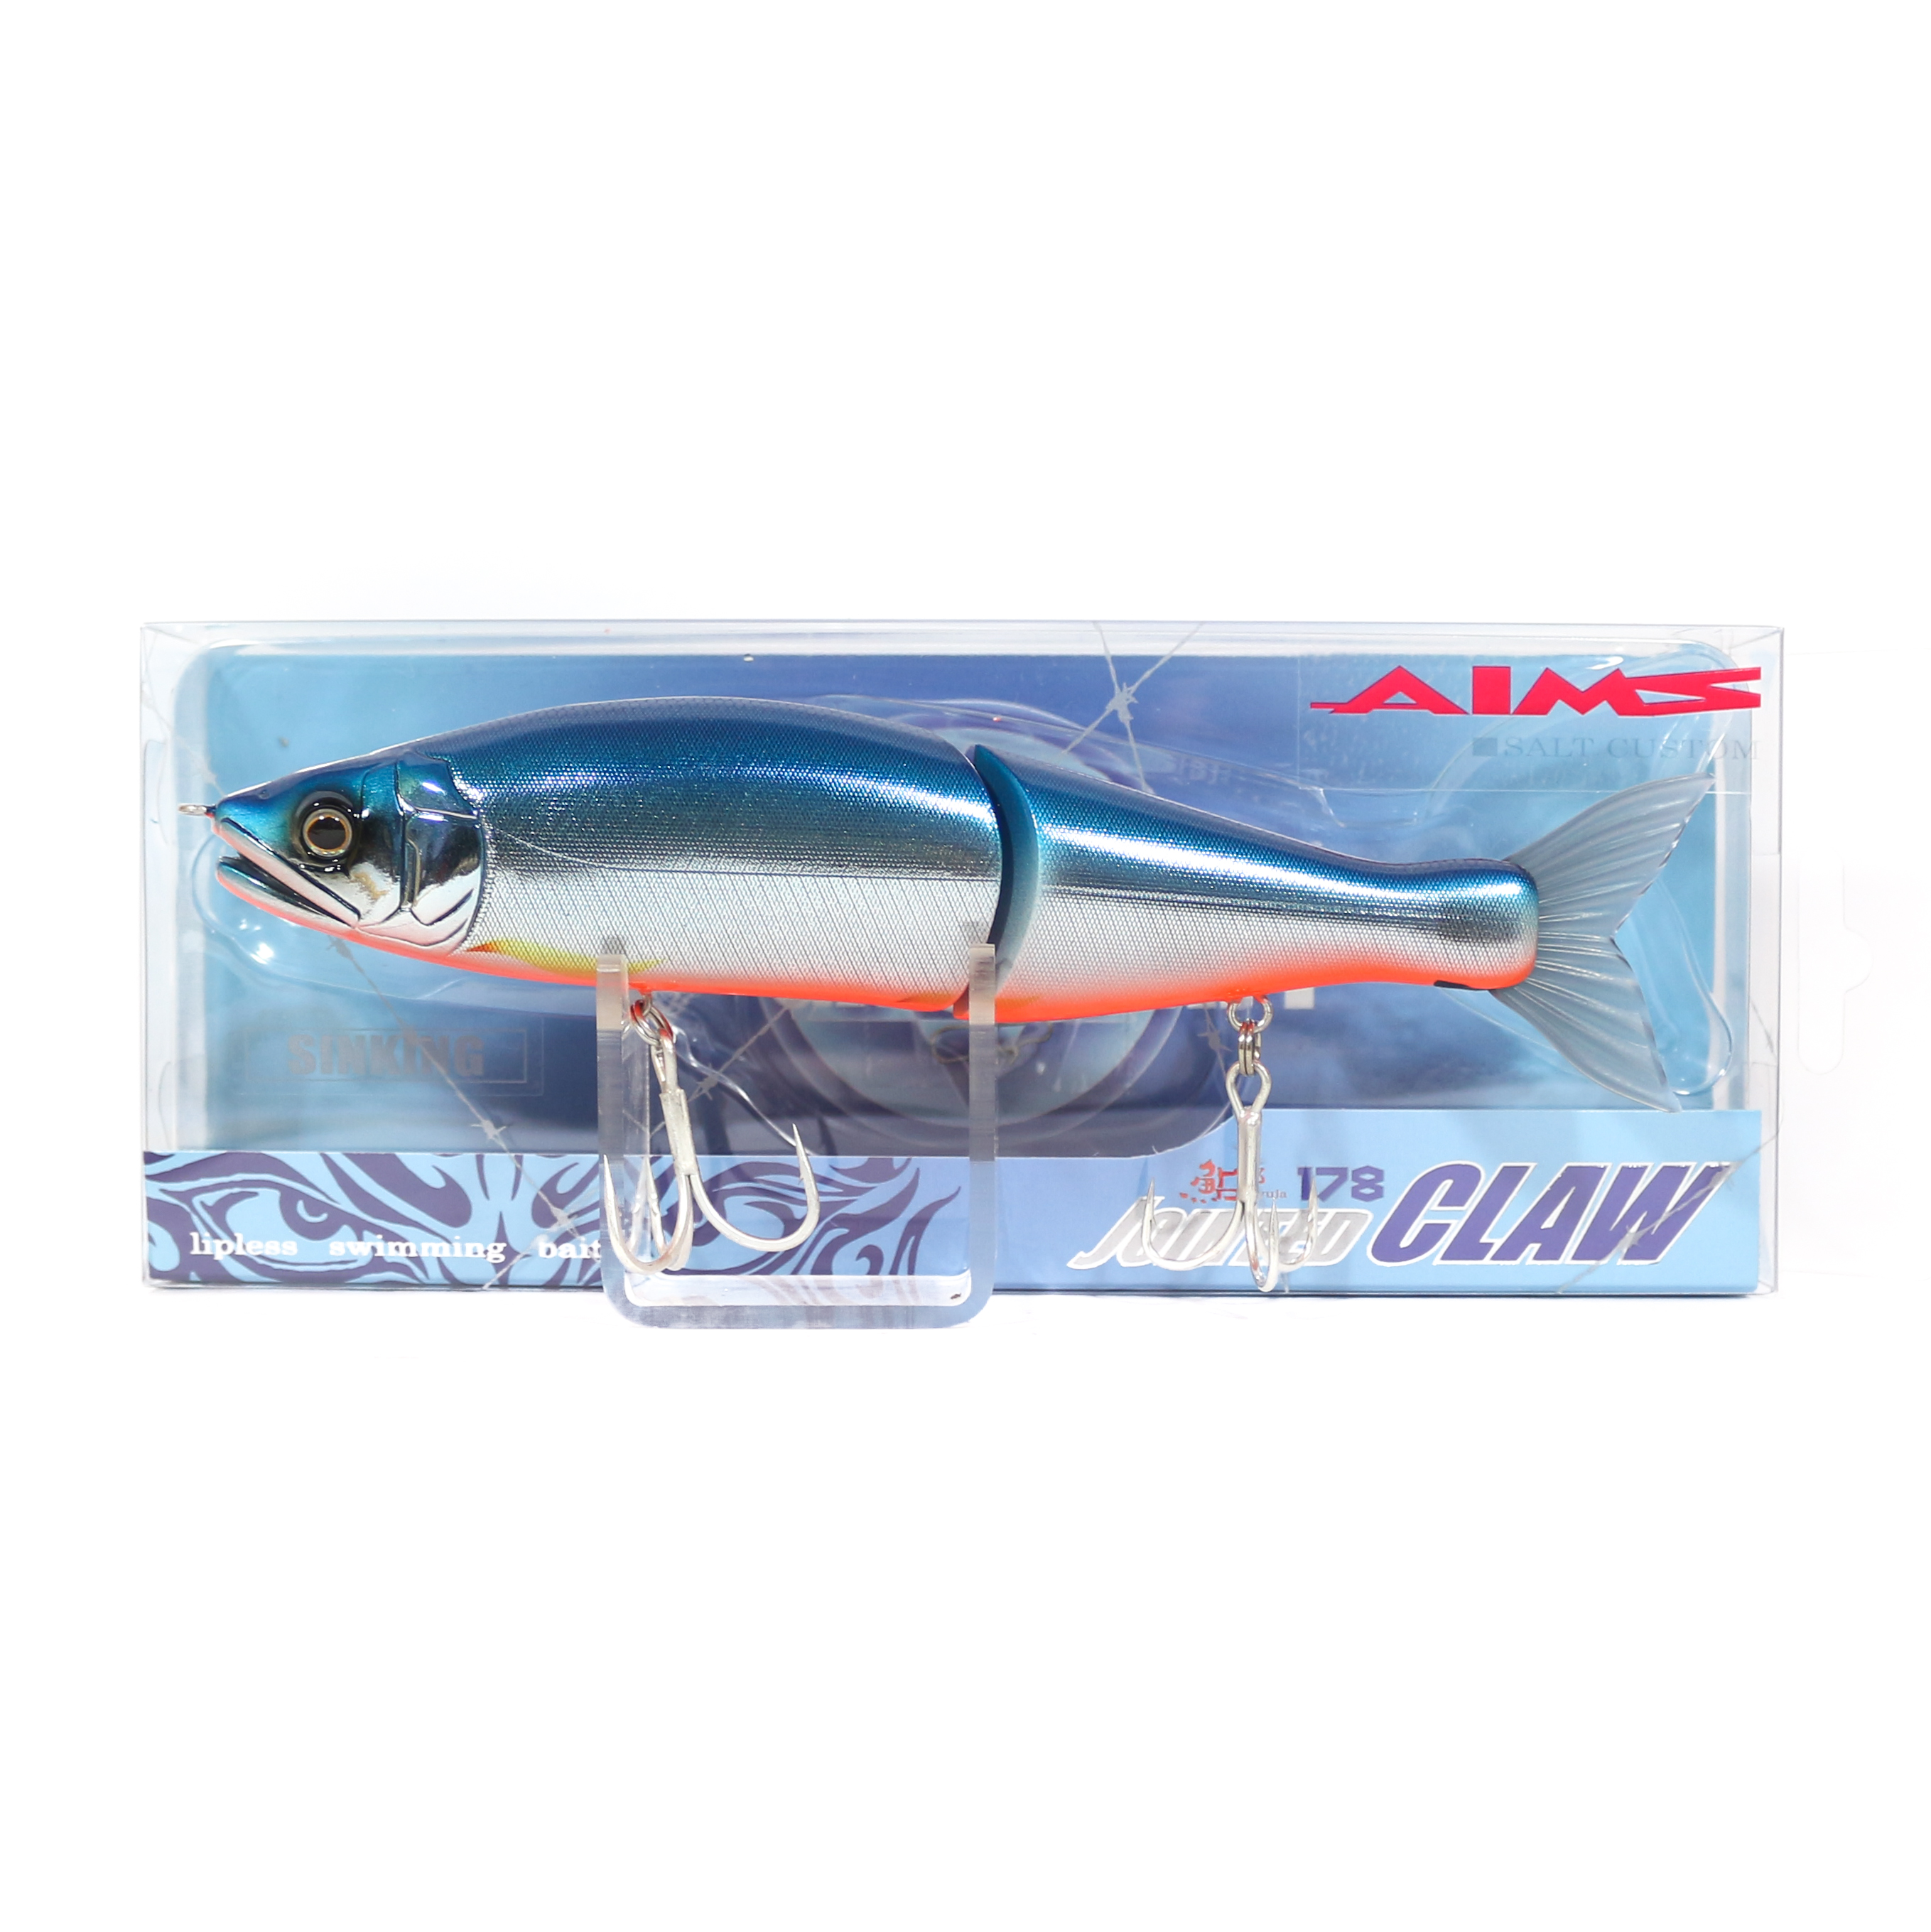 Gan Craft Jointed Claw 178 Sinking Jointed Lure AS-04 (0496)